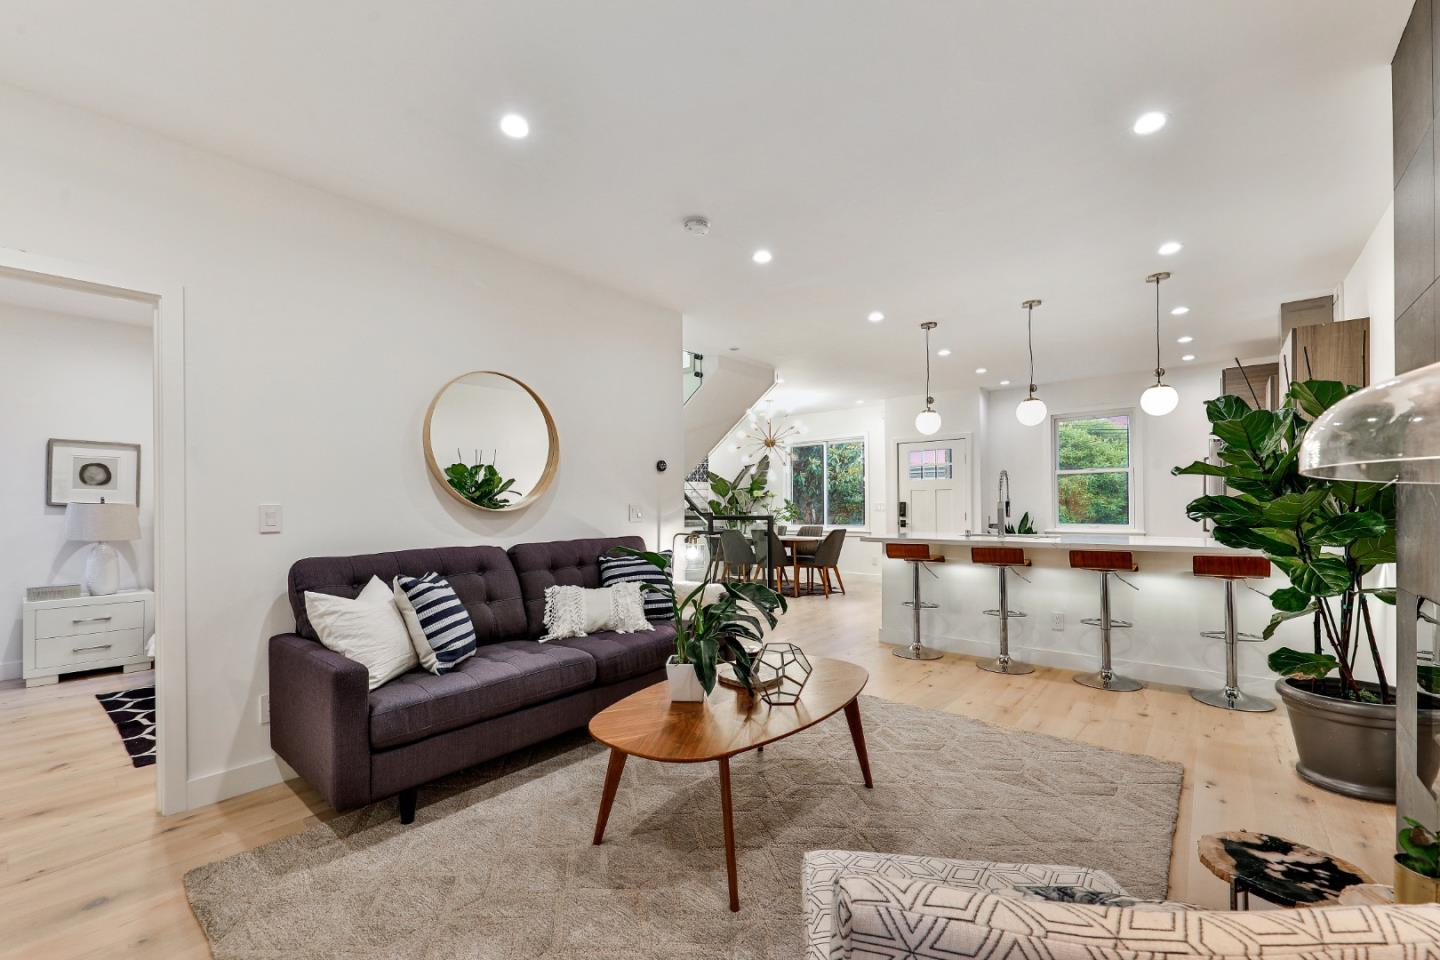 Image for 704 Moultrie Street, <br>San Francisco 94110